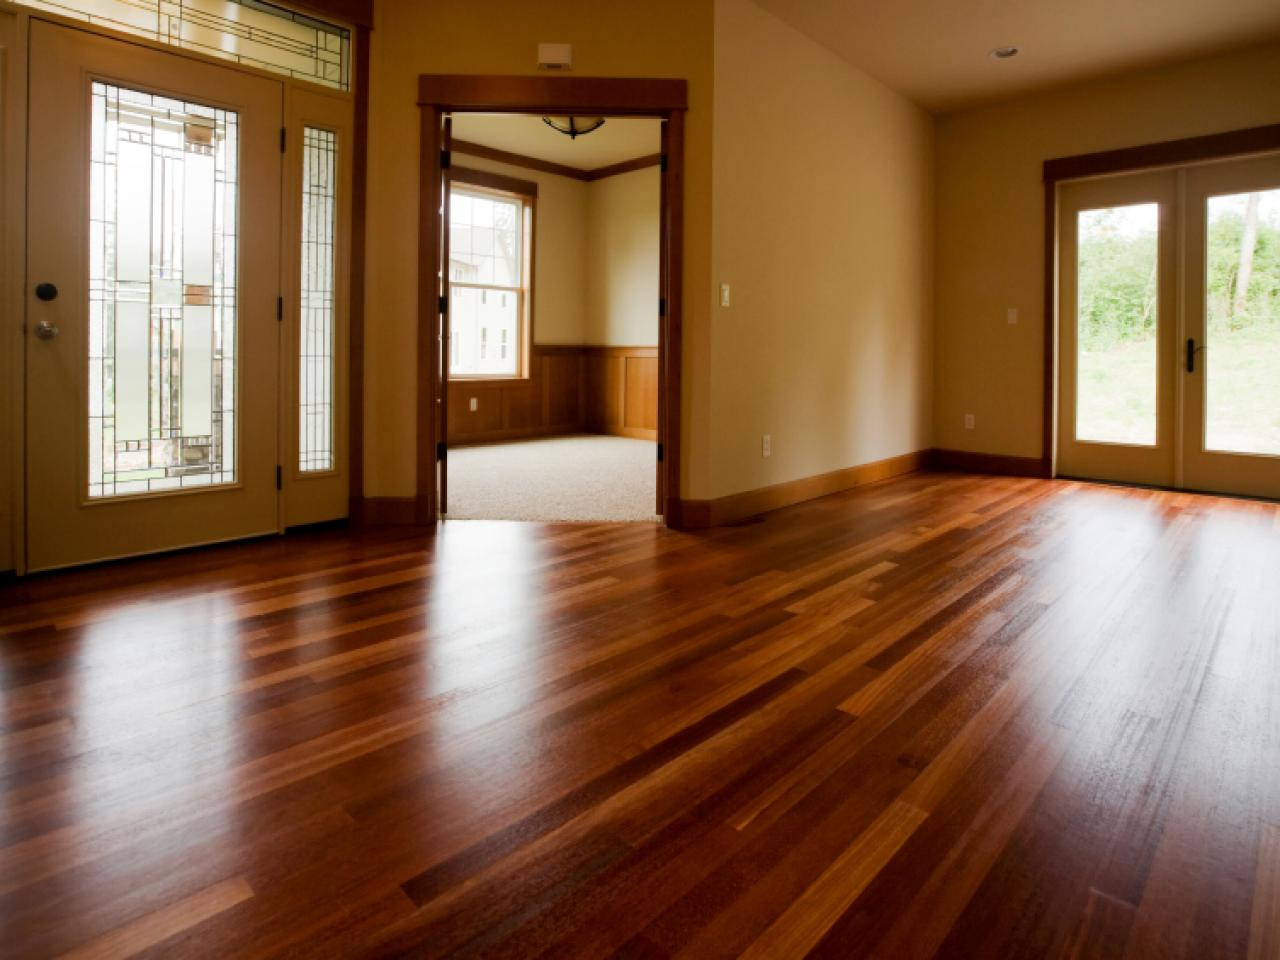 cleaning hardwood laminate floors with vinegar of flooring would be better for home design with clean laminate floors intended for how to clean laminate floors with vinegar clean laminate floors best product to clean